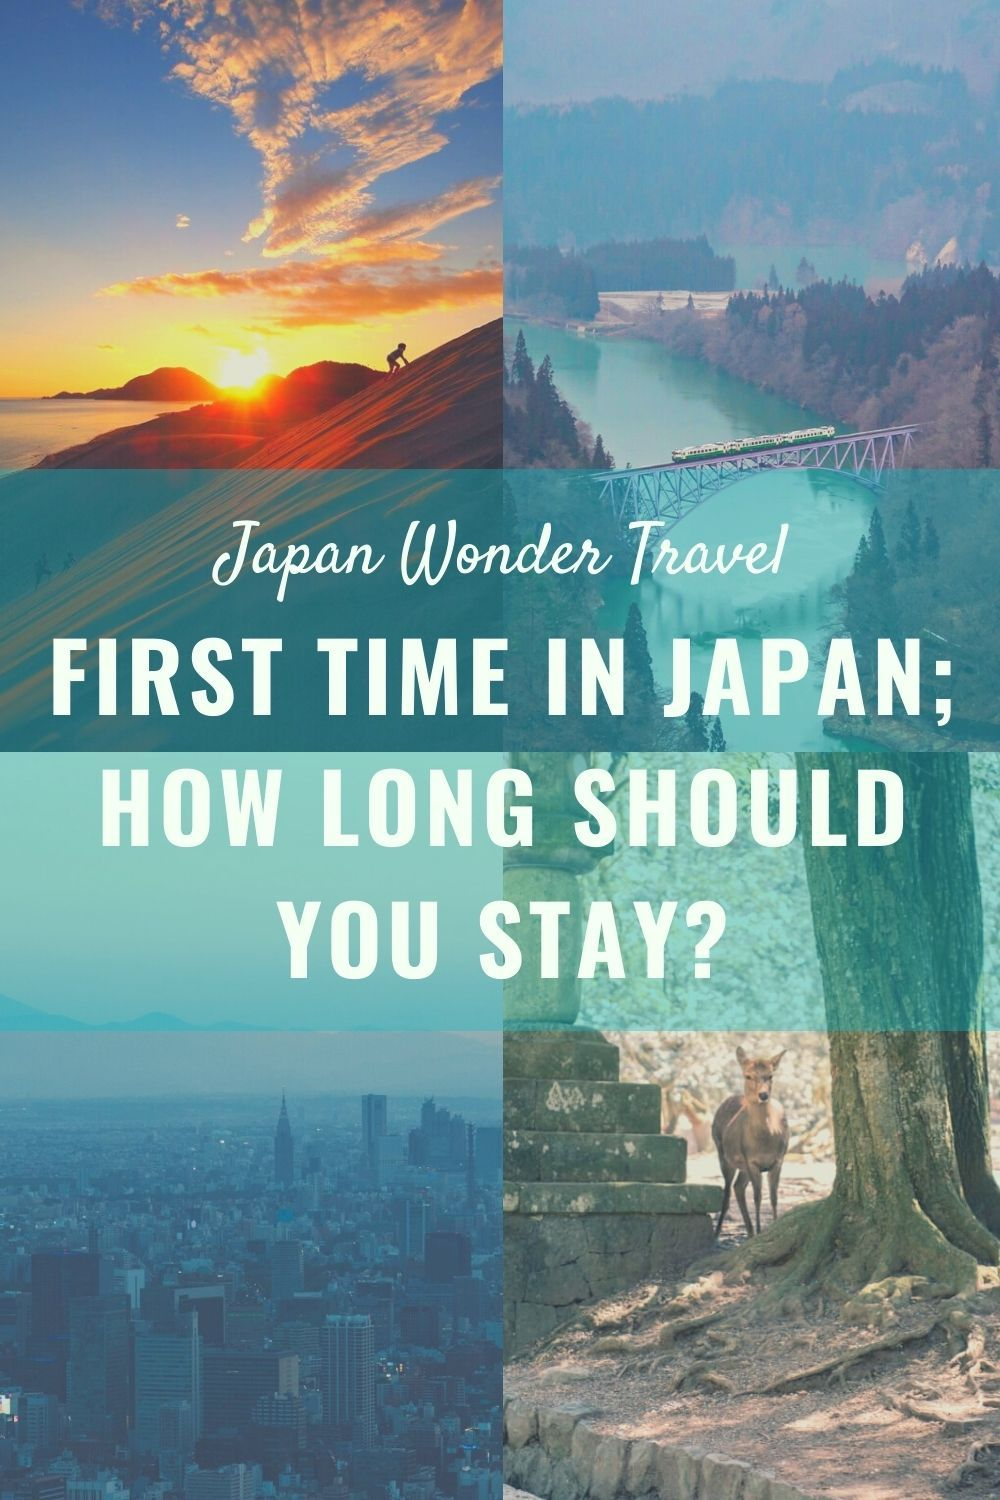 f8bf71cee4b819265ff0fff46bf81312 - How Long Will It Take To Get To Japan